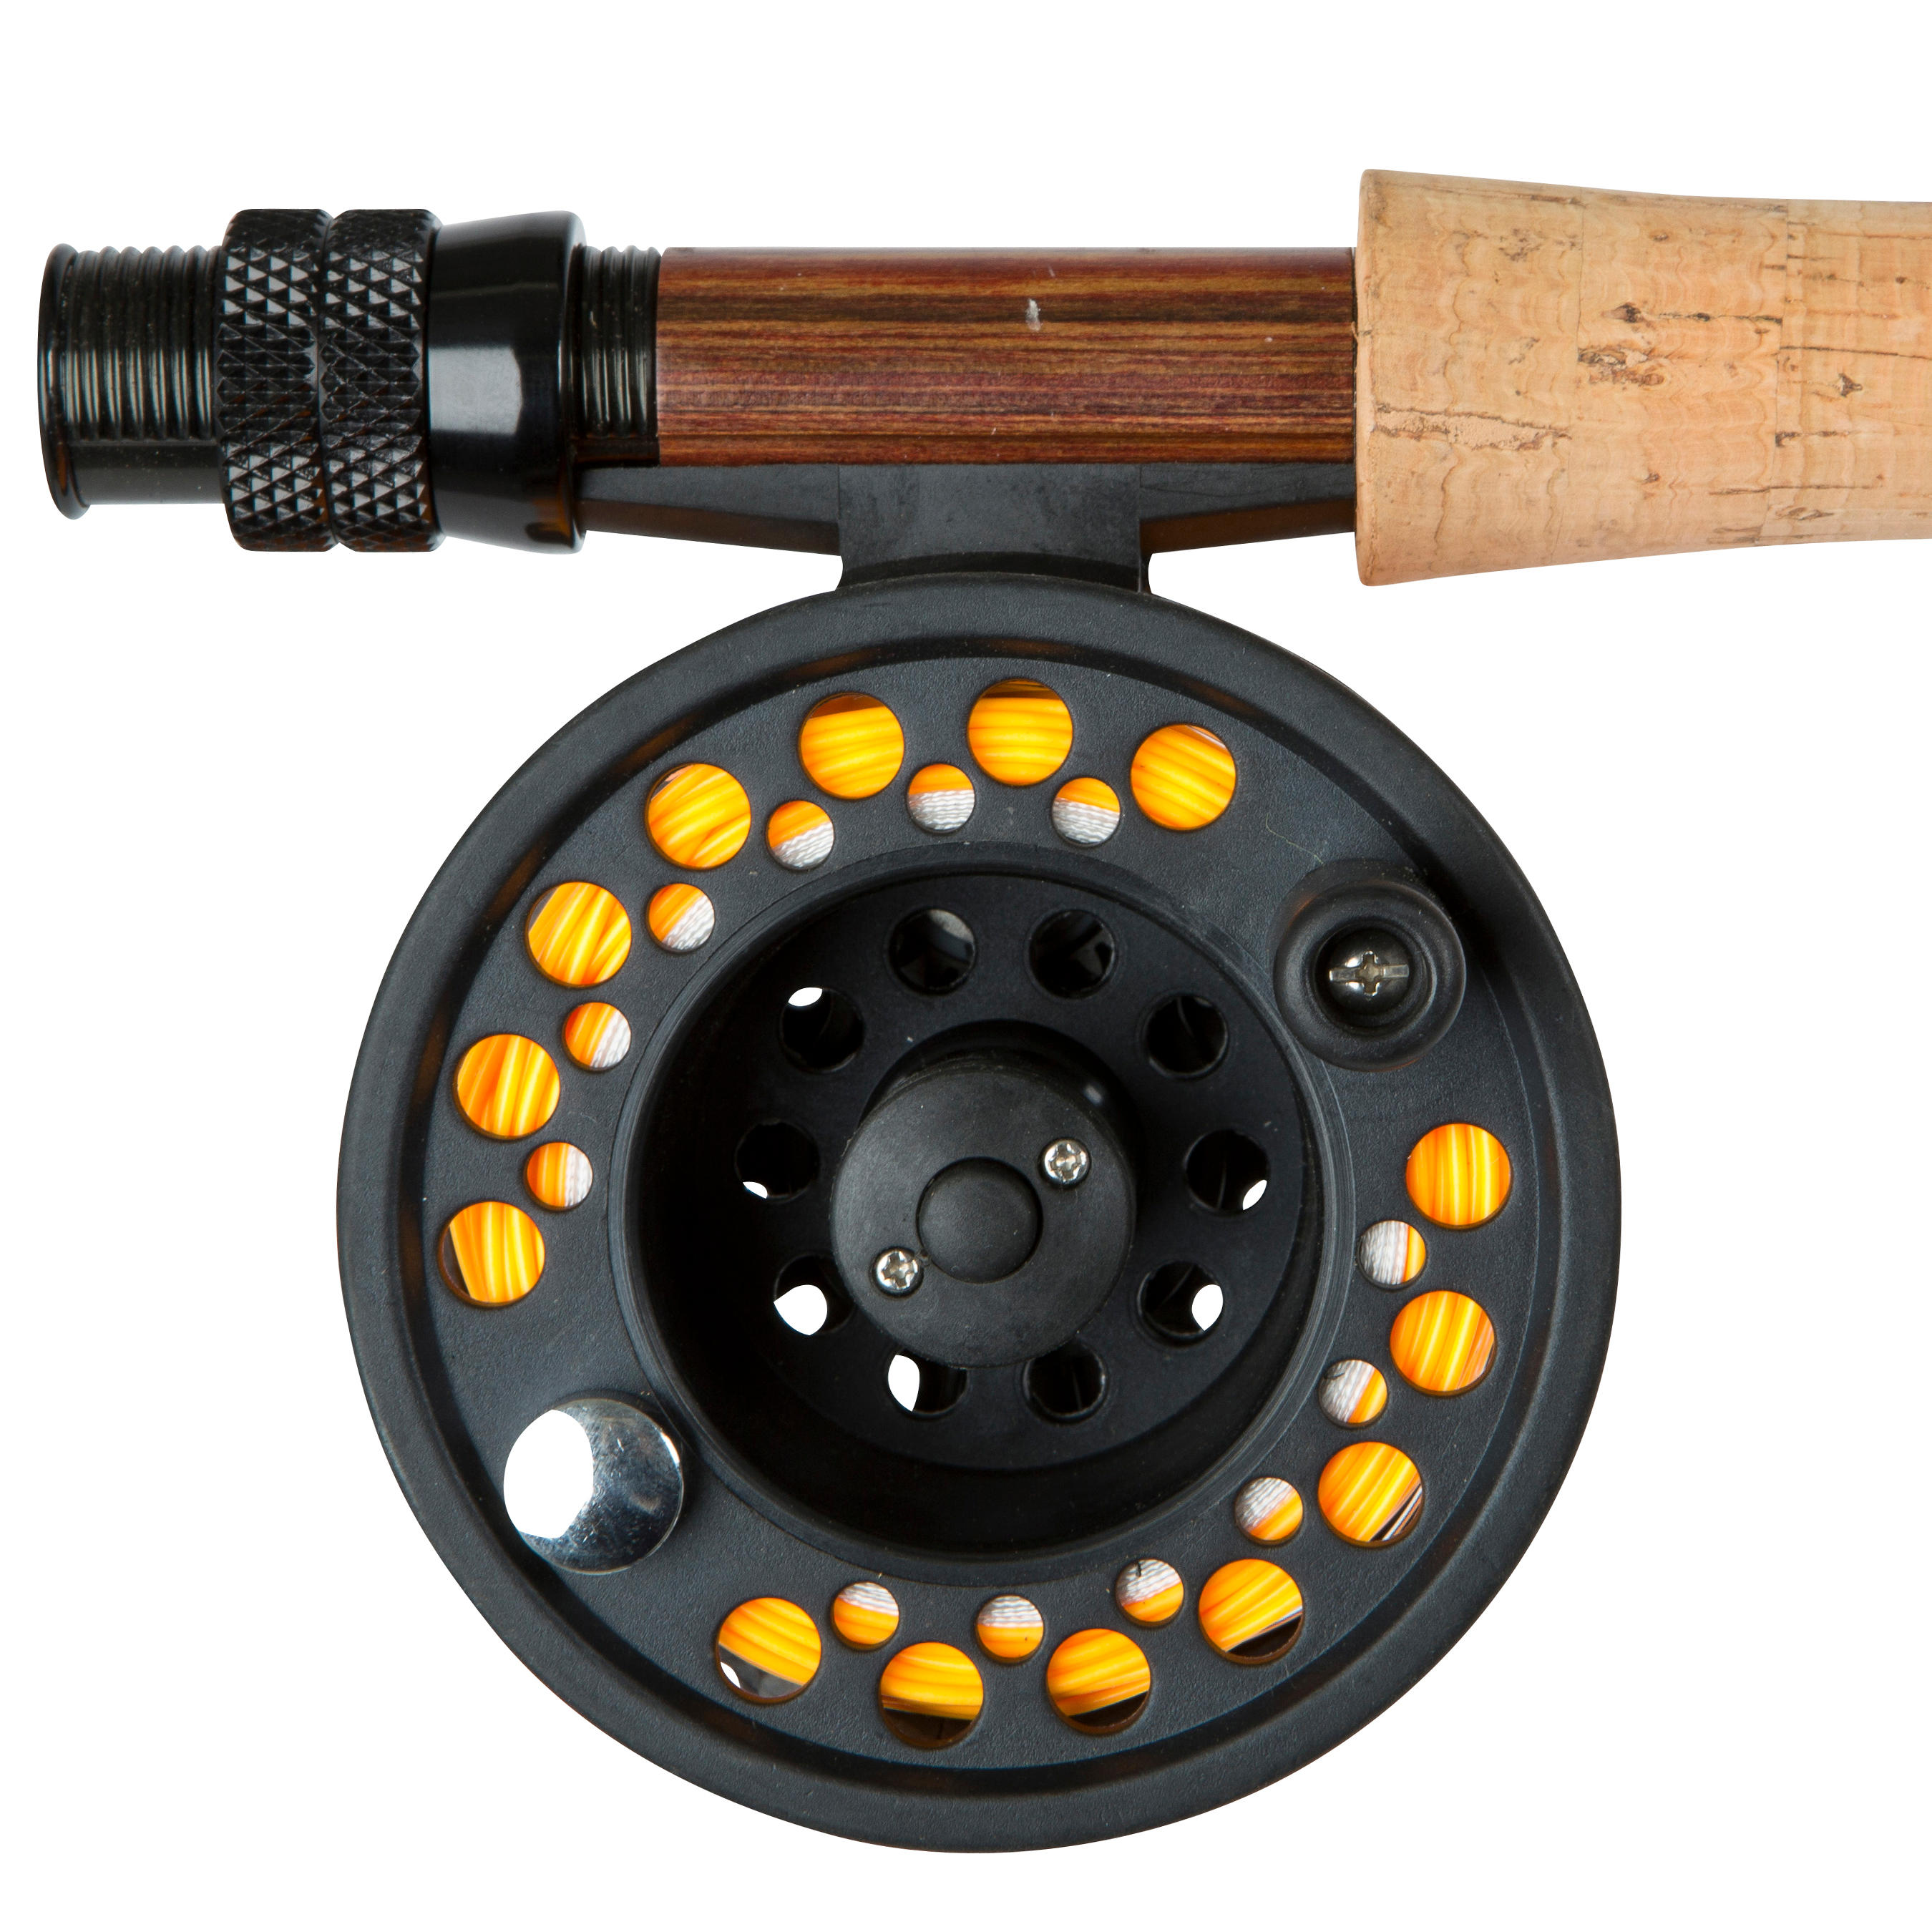 FLY-FISHING OUTFIT